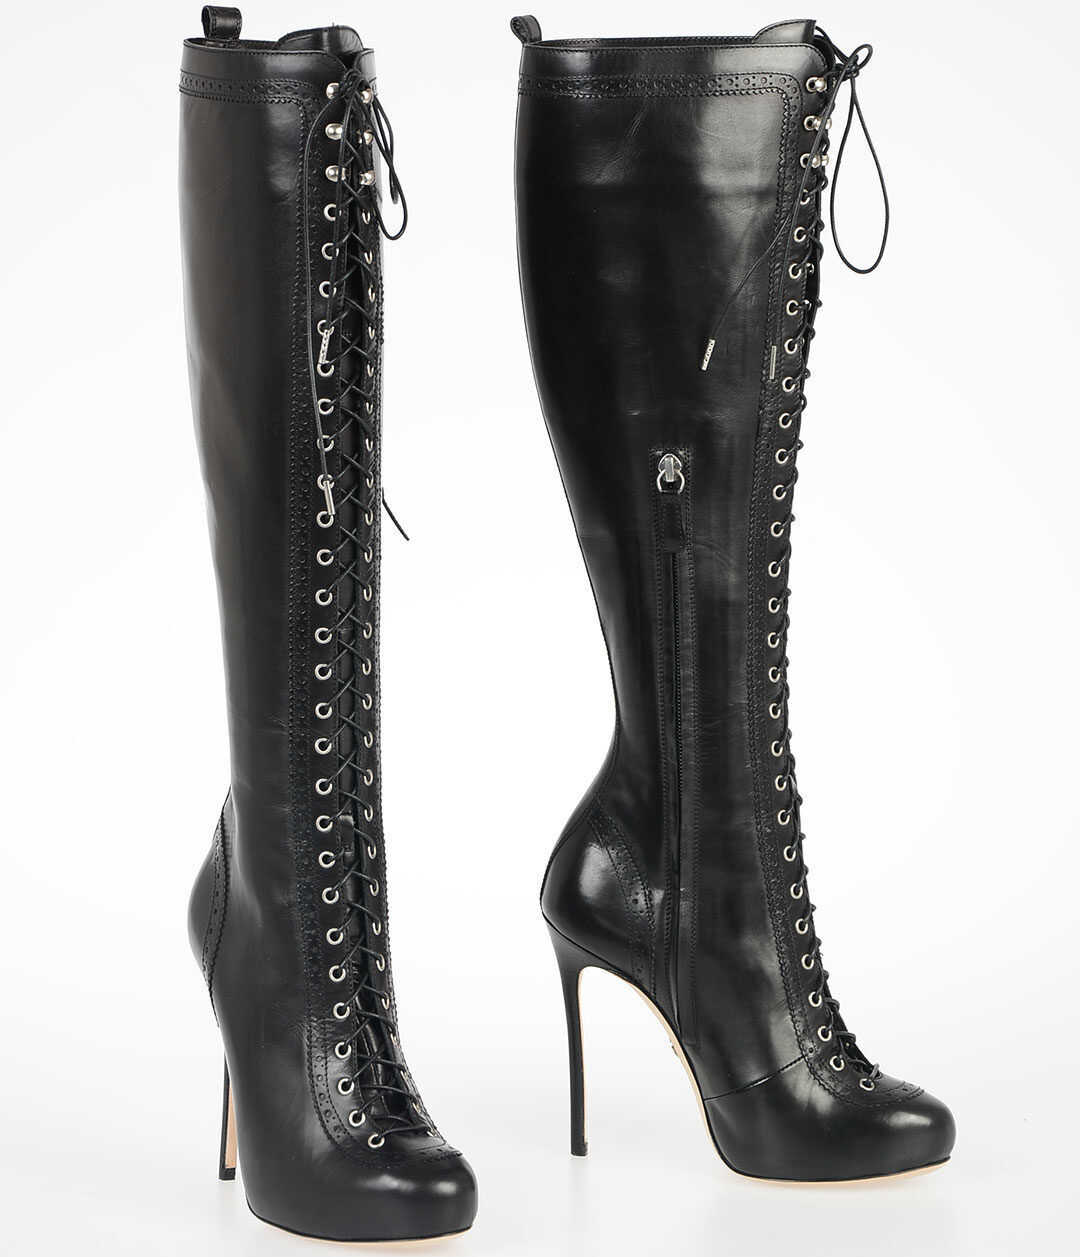 12cm Leather WITNESS Boots thumbnail